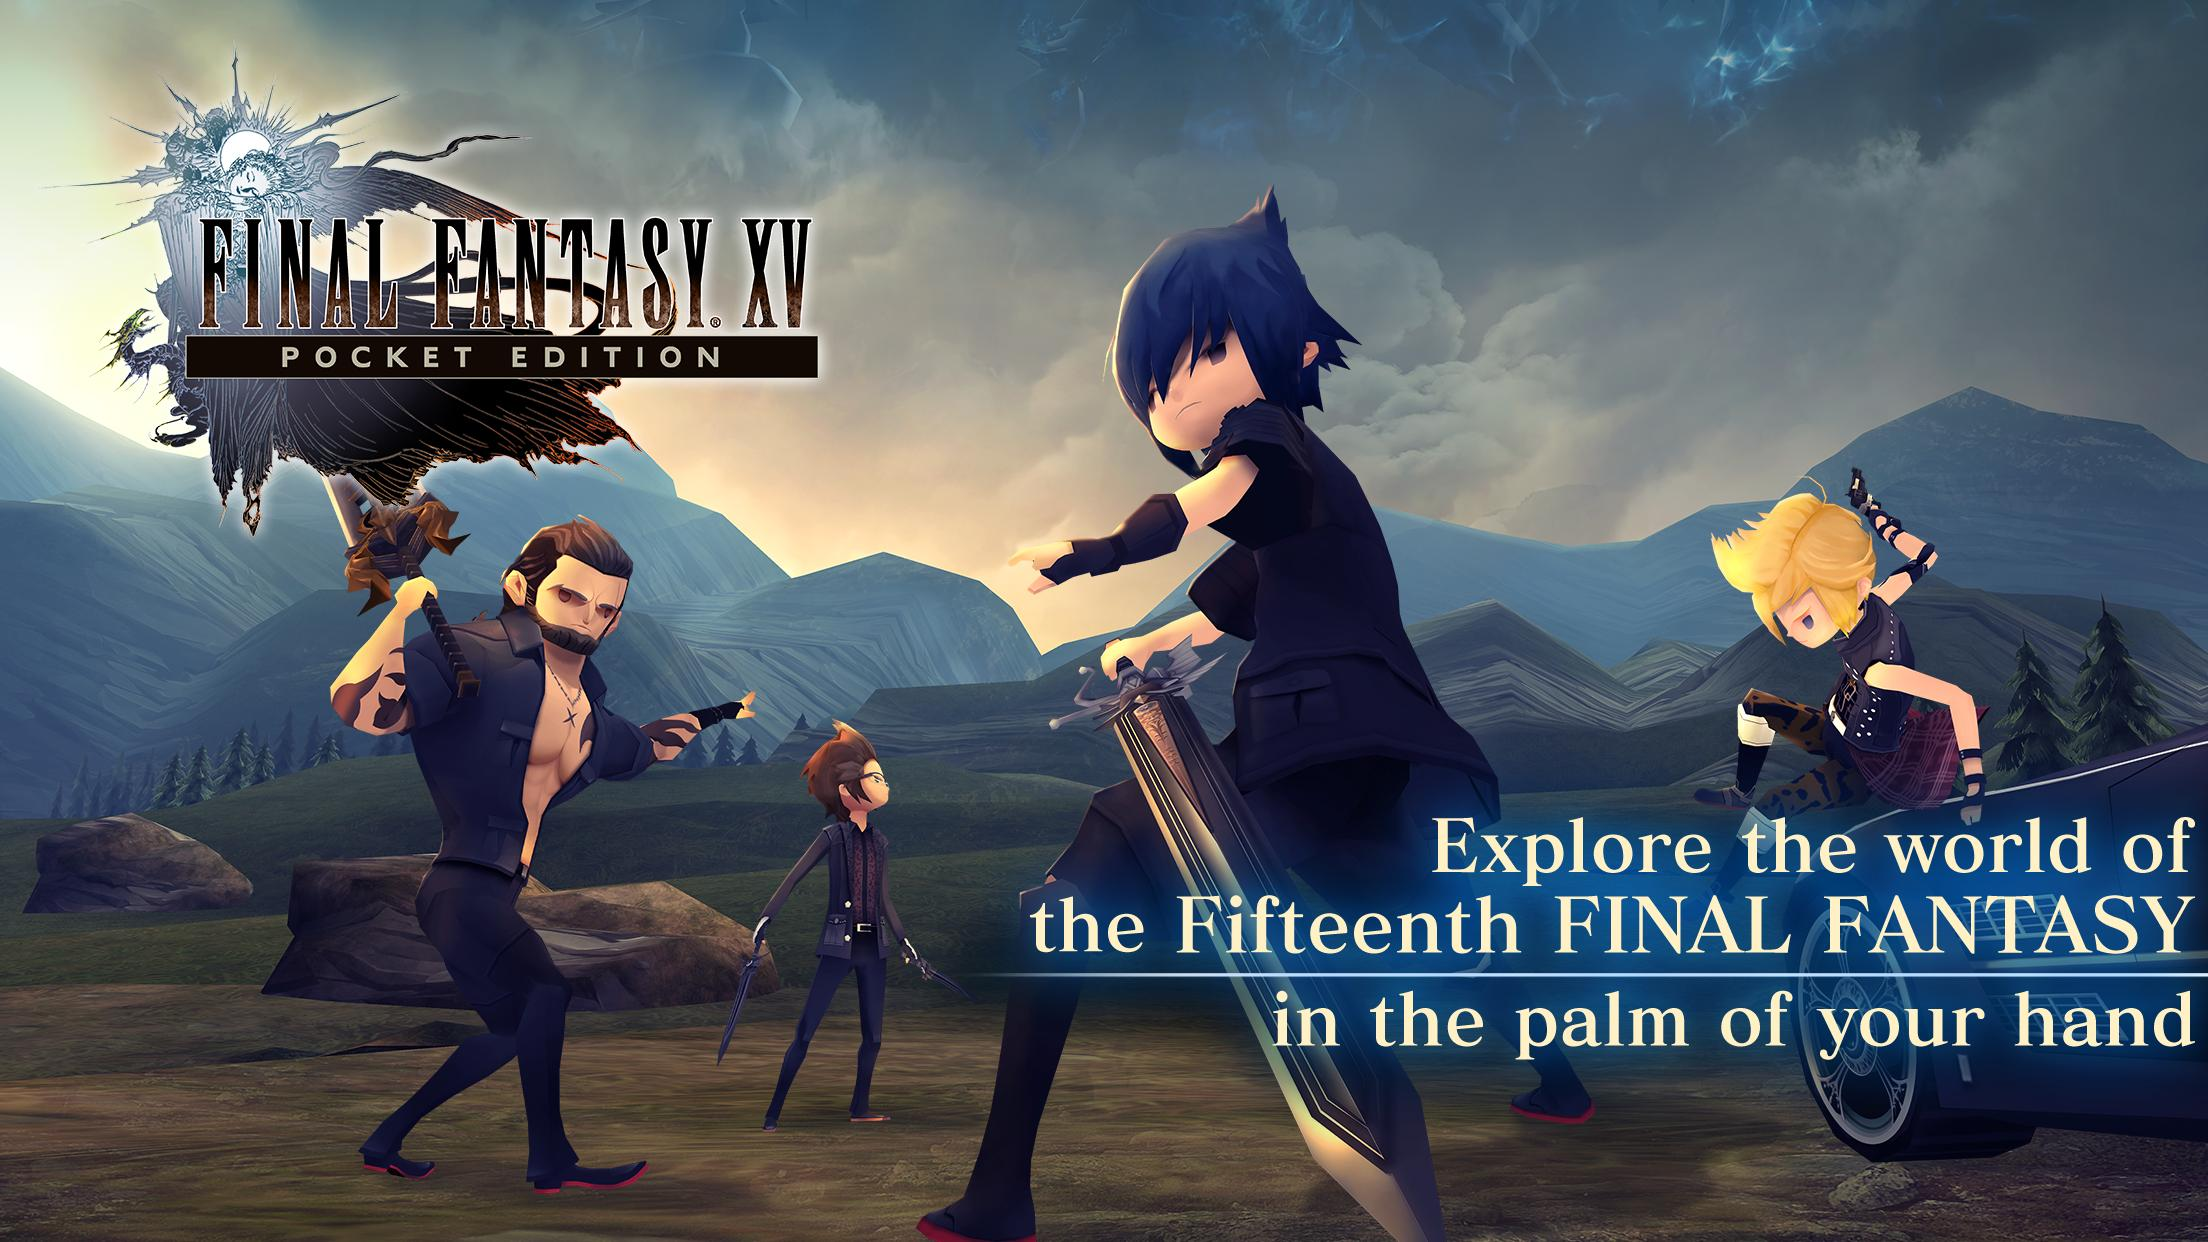 FINAL FANTASY XV POCKET EDITION 1.0.6.631 Screenshot 11